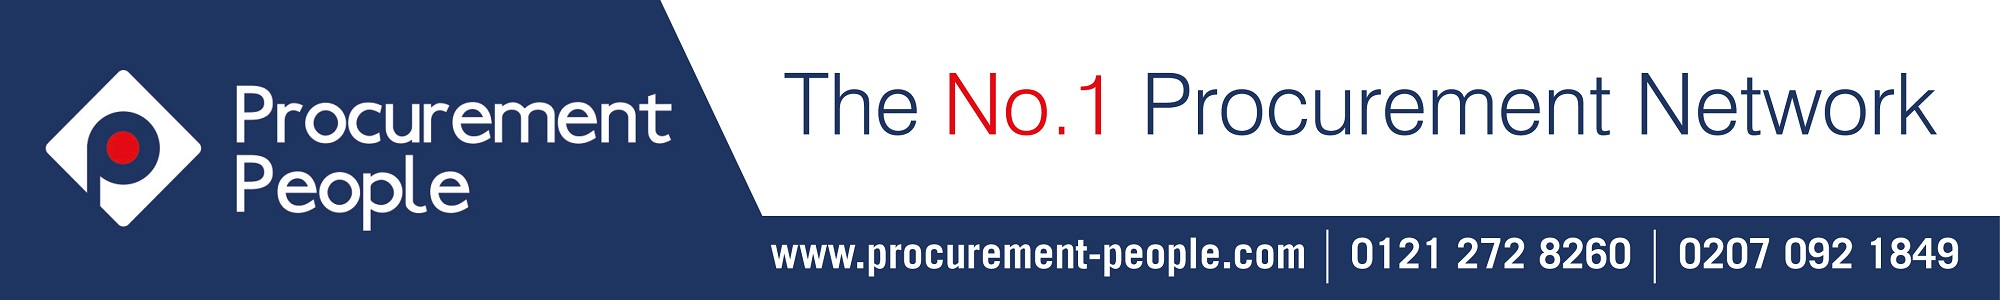 Procurement People